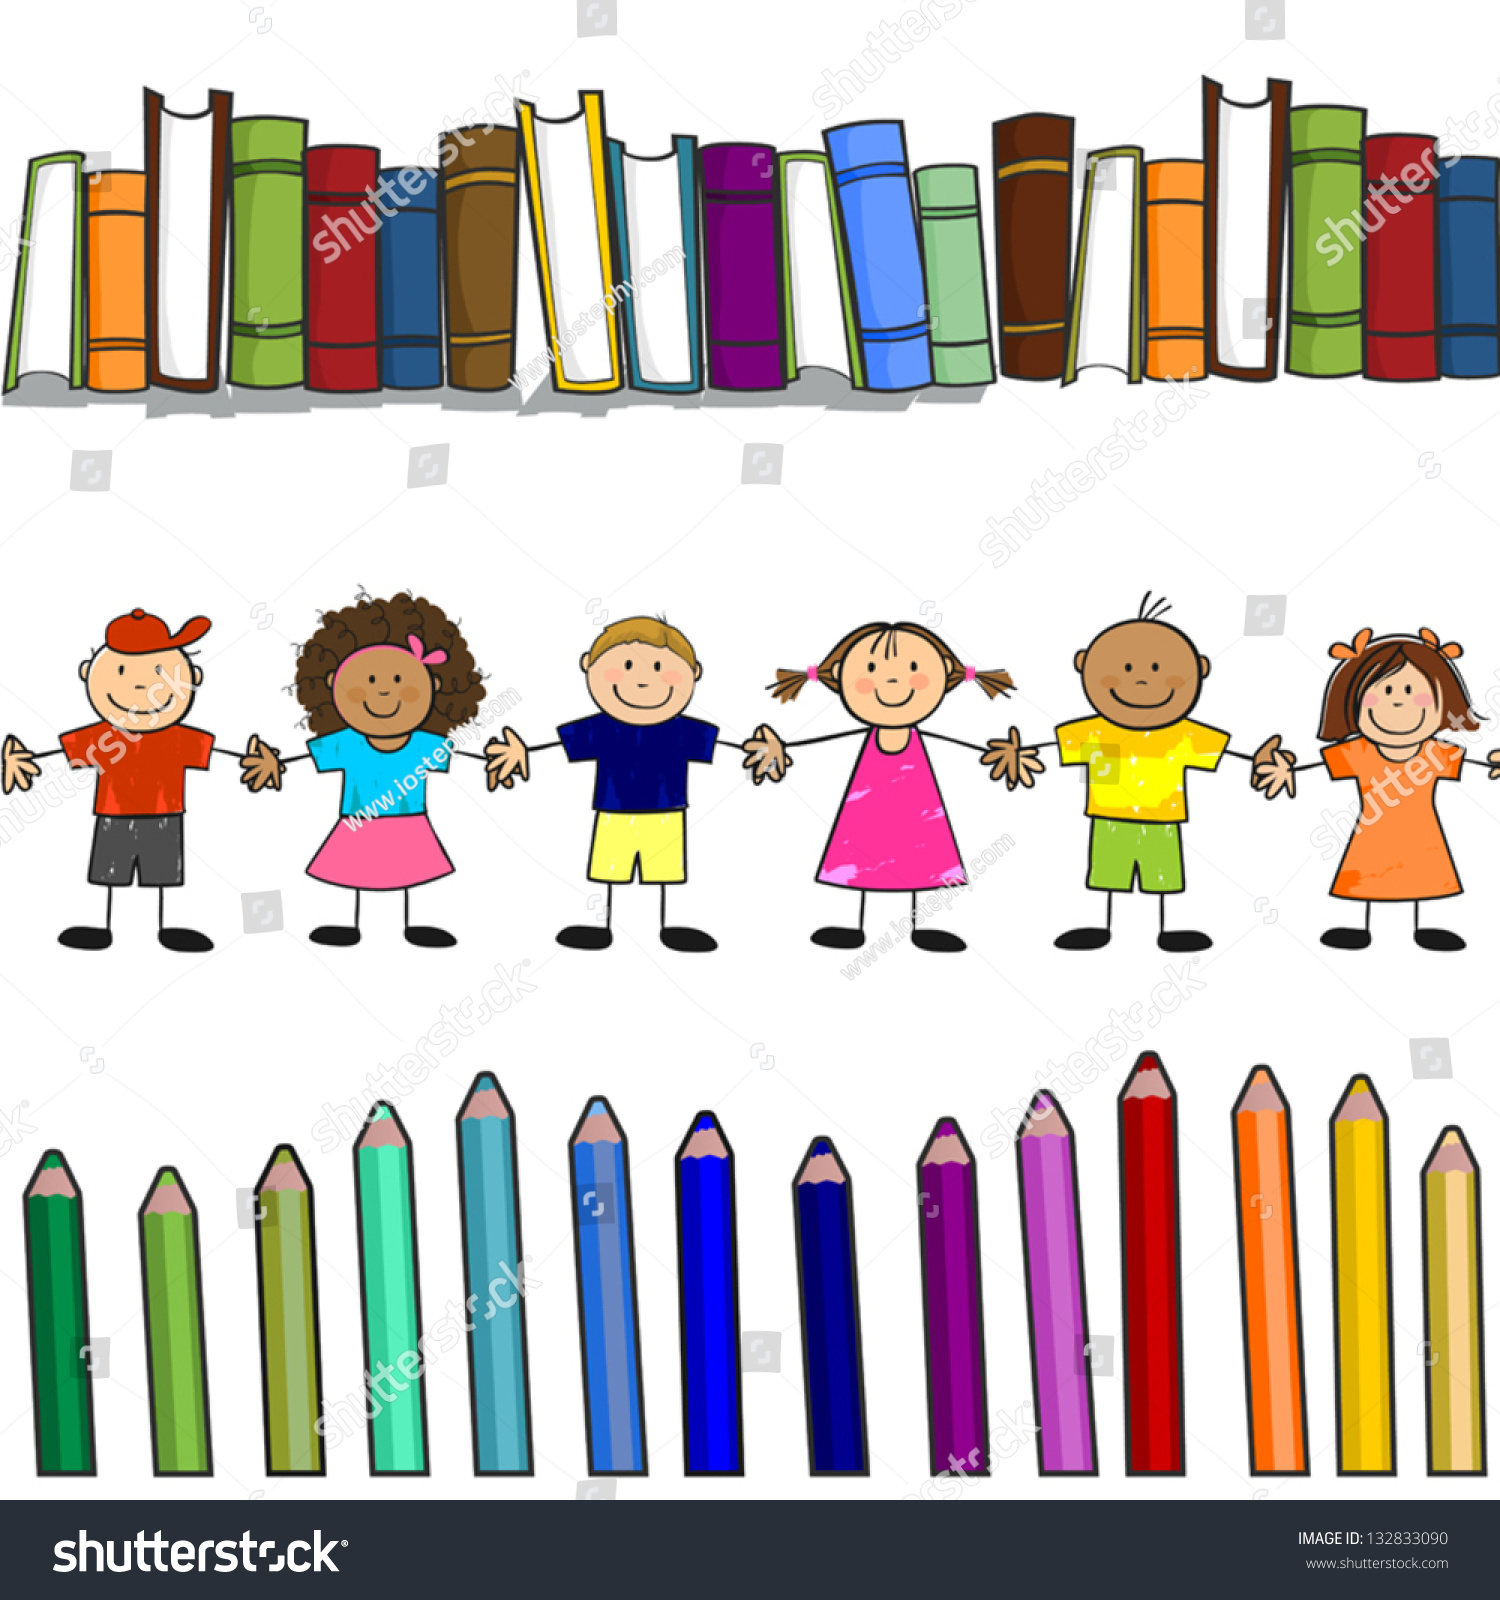 Childrens Books Colors Naive Style Seamless More Stock Vector ...